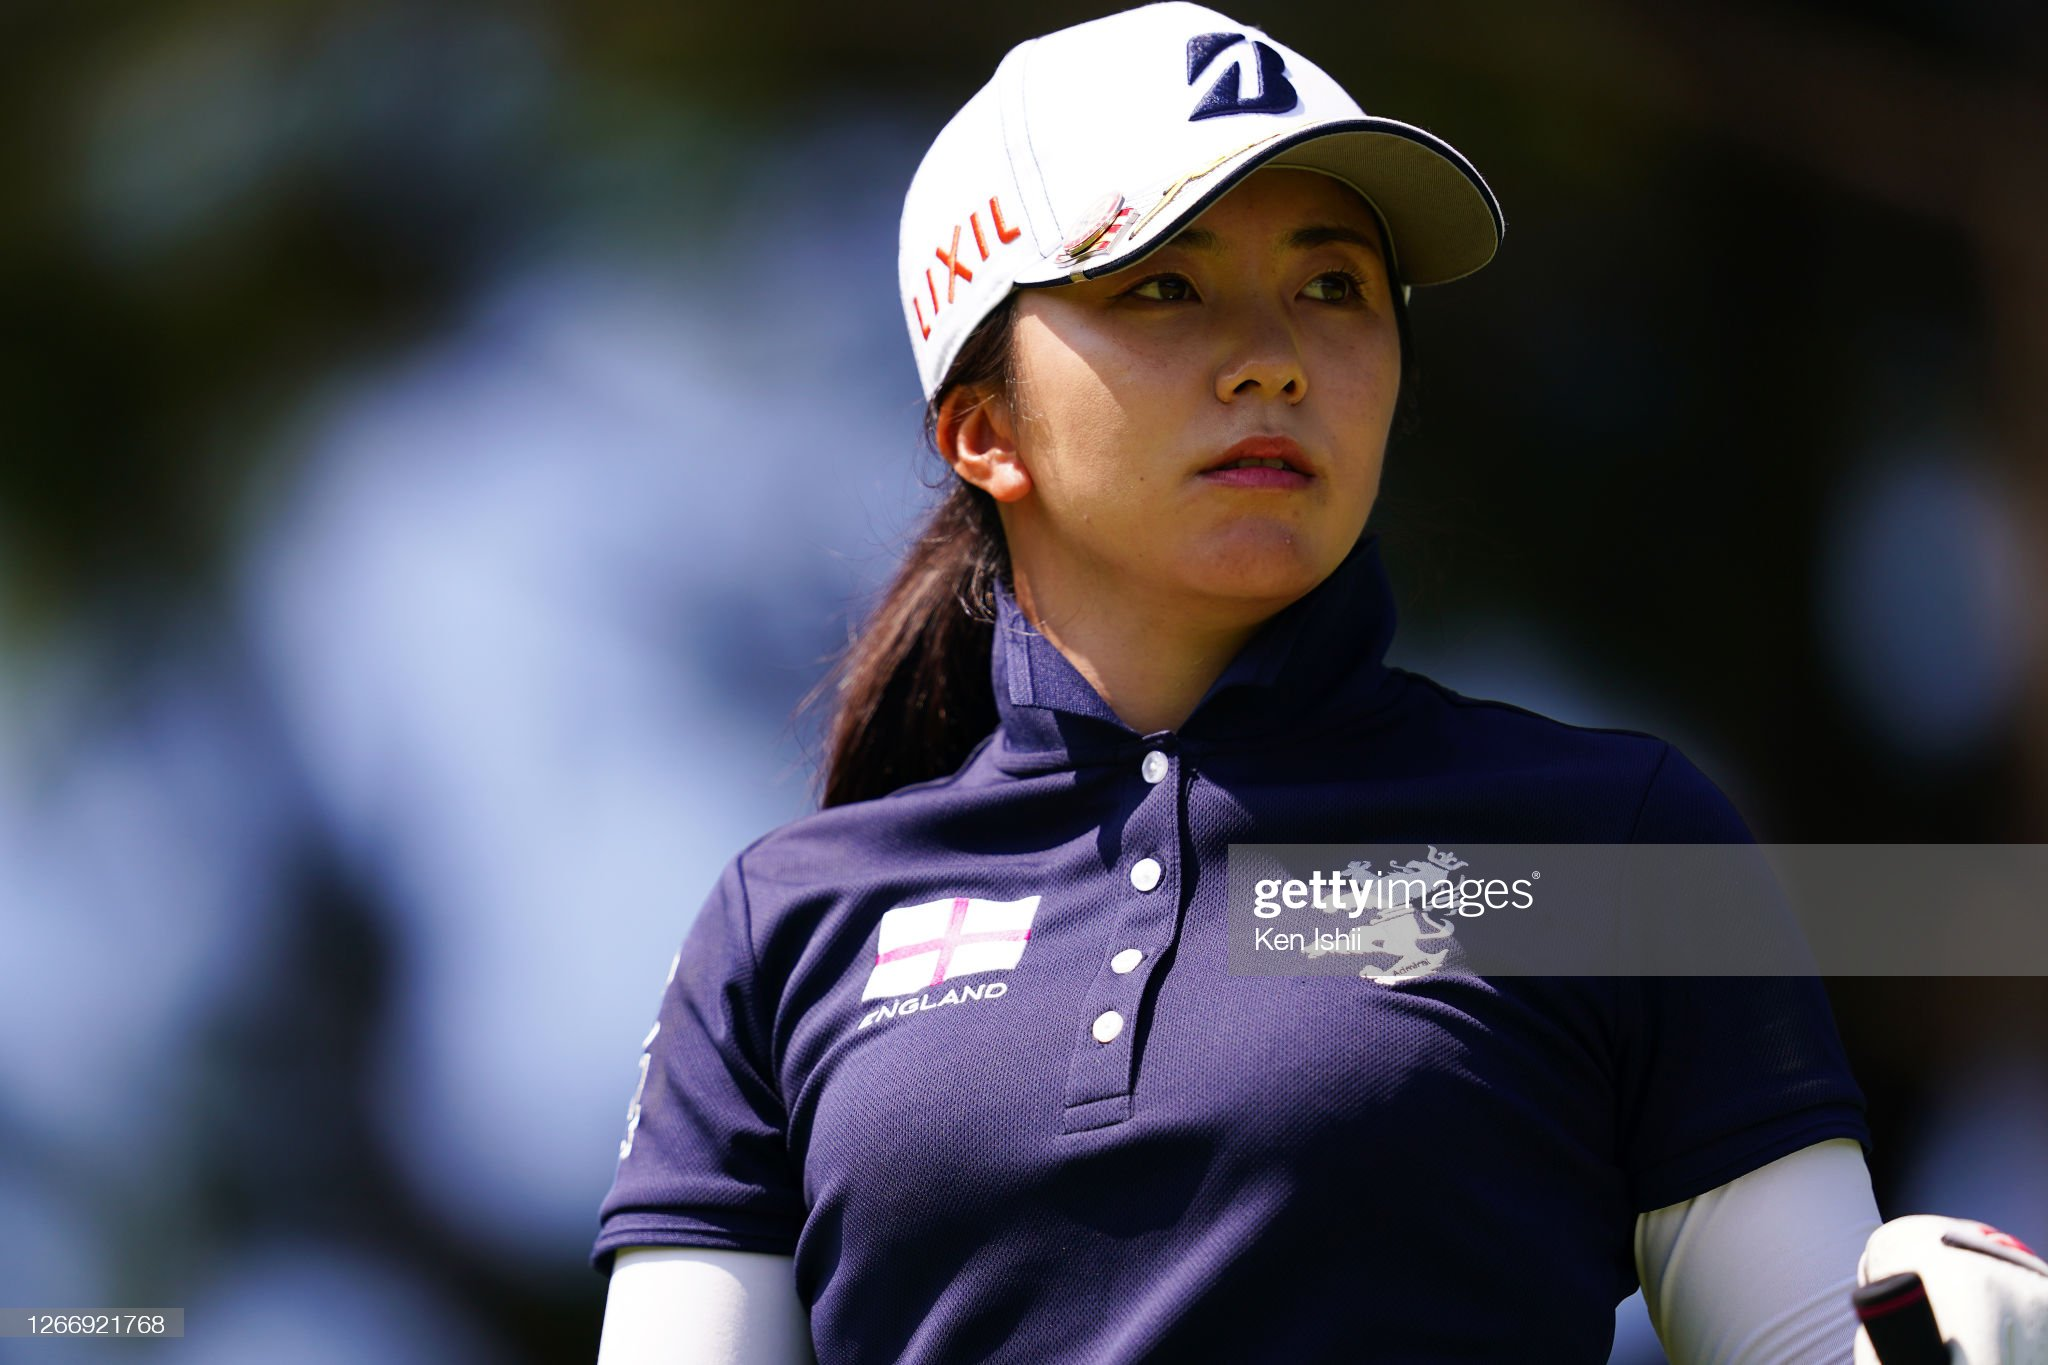 https://media.gettyimages.com/photos/kotone-hori-of-japan-watches-her-tee-shot-on-the-3rd-hole-during-the-picture-id1266921768?s=2048x2048